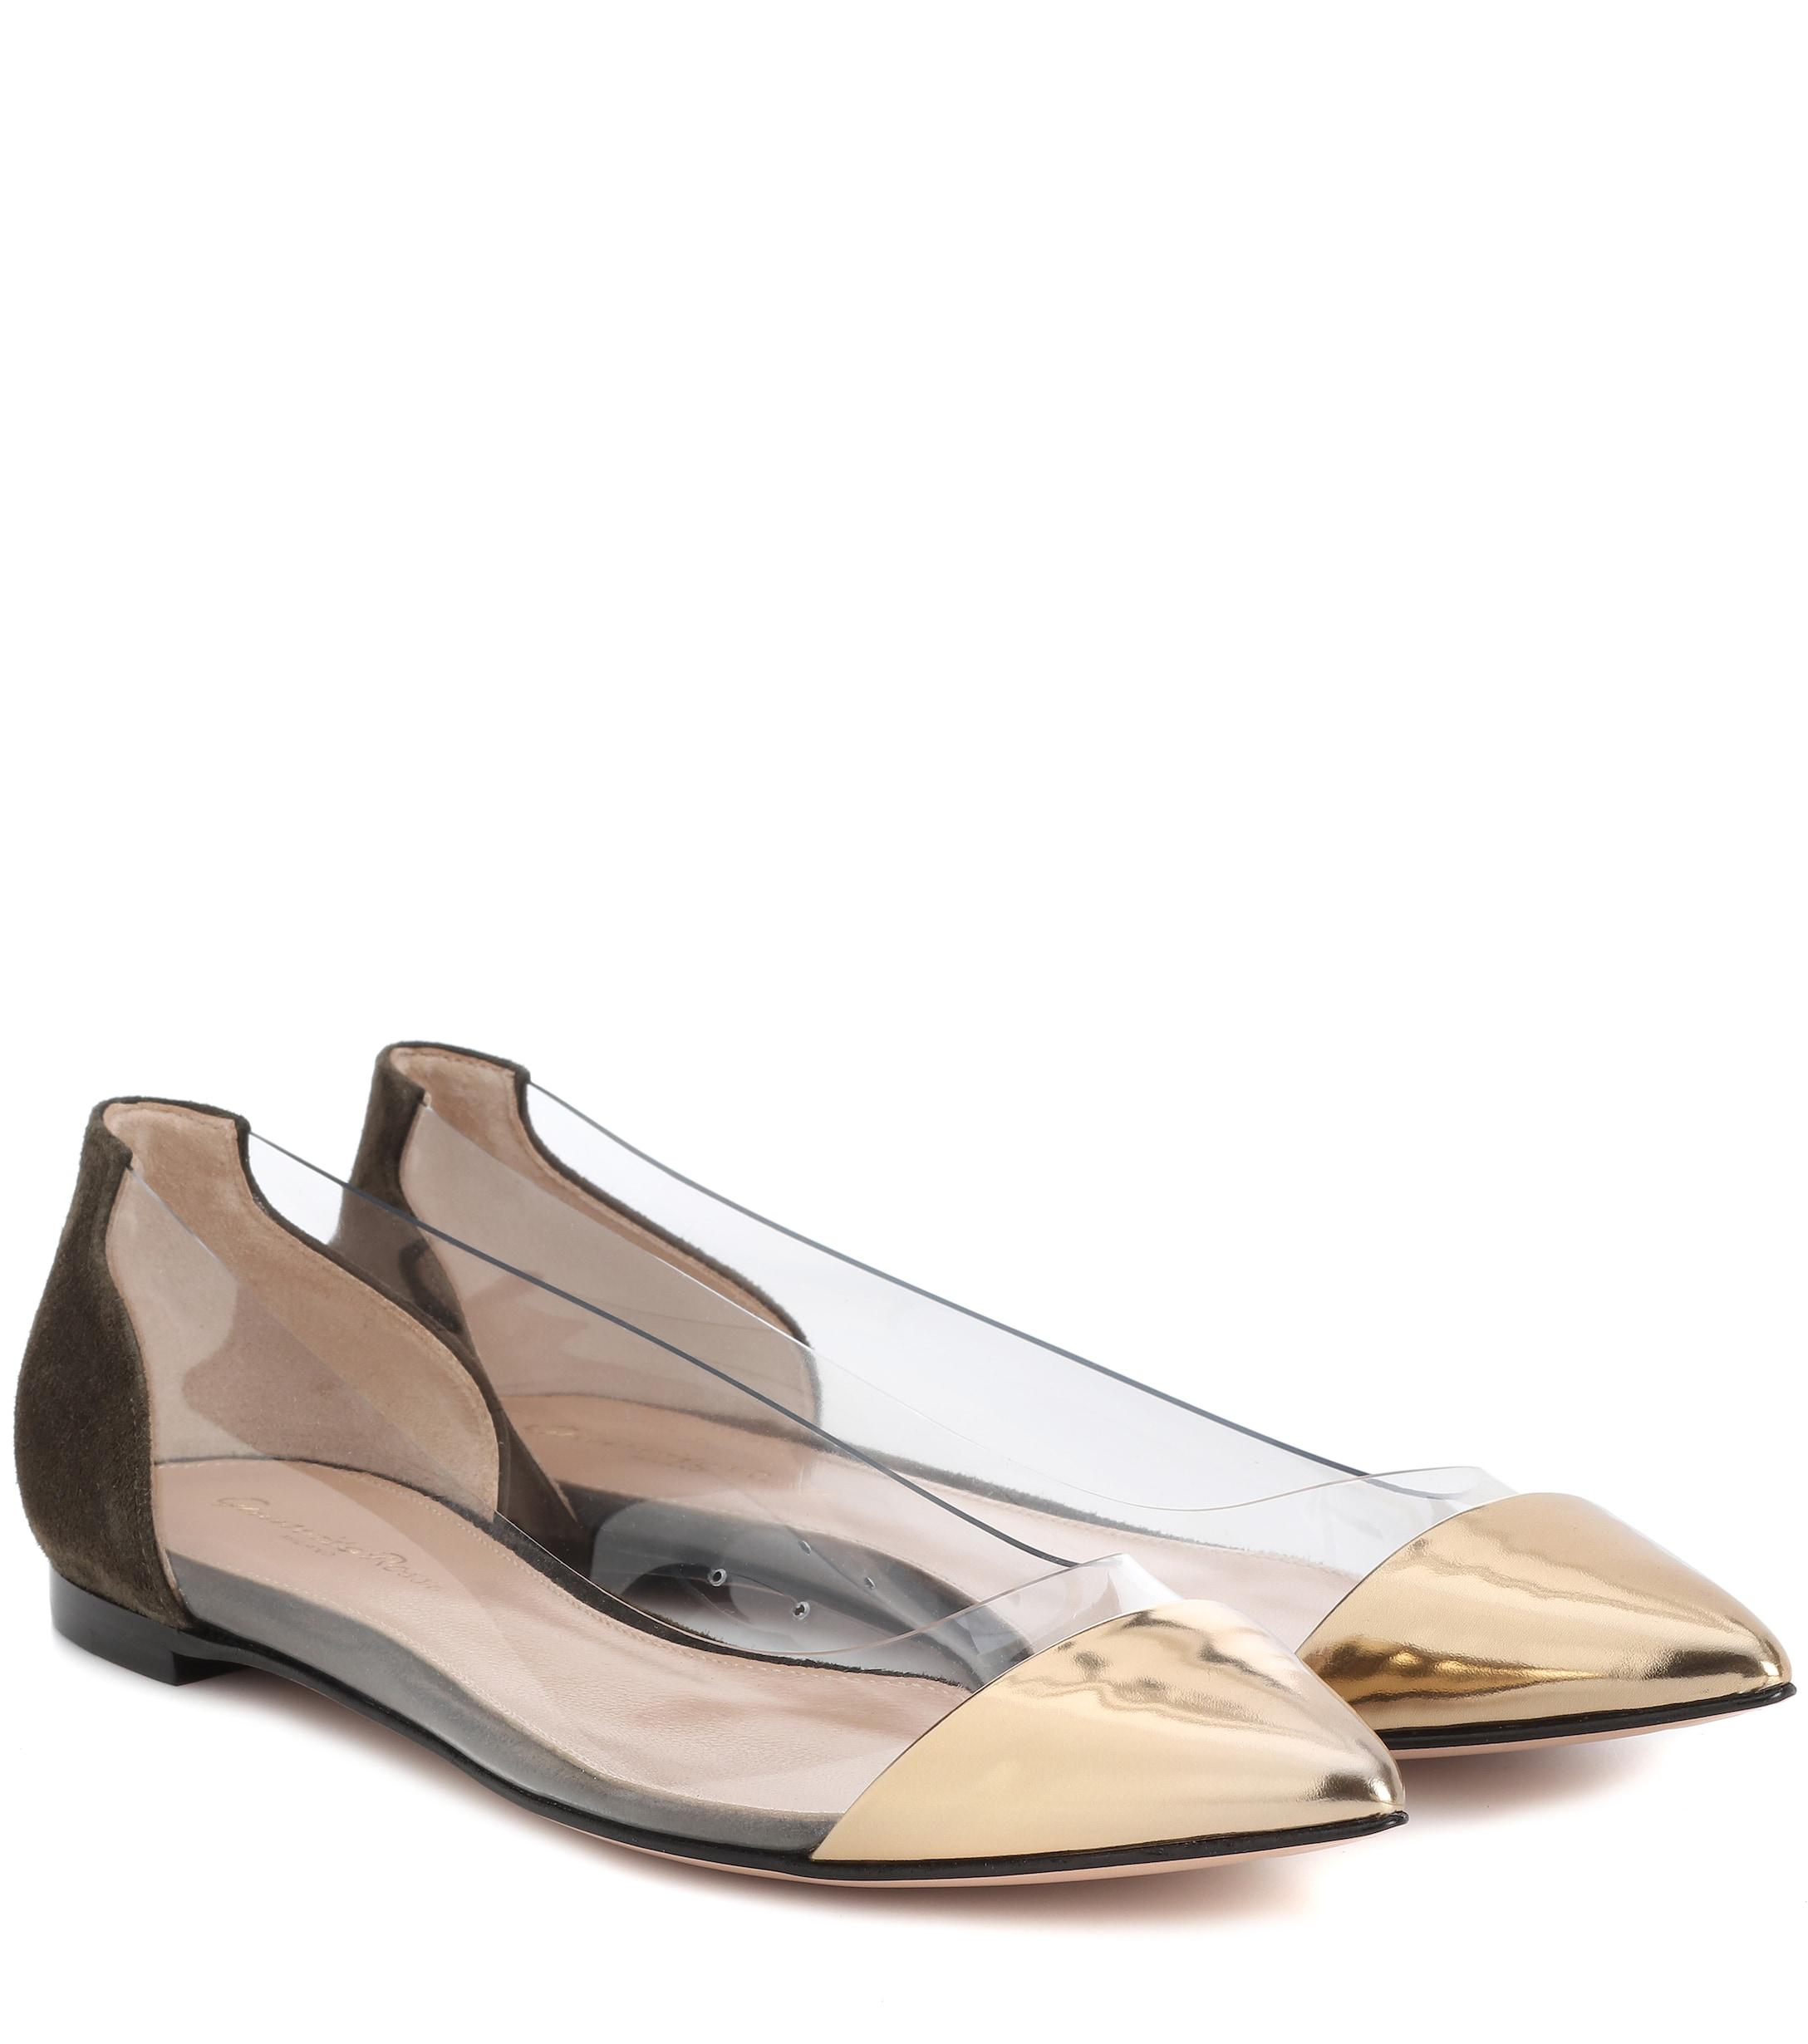 bd07e6dfded gianvito-rossi-mekongtrasparentdark-olive-Exclusive-To-Mytheresacom-Plexi-Leather-And-Suede-Ballerinas.jpeg